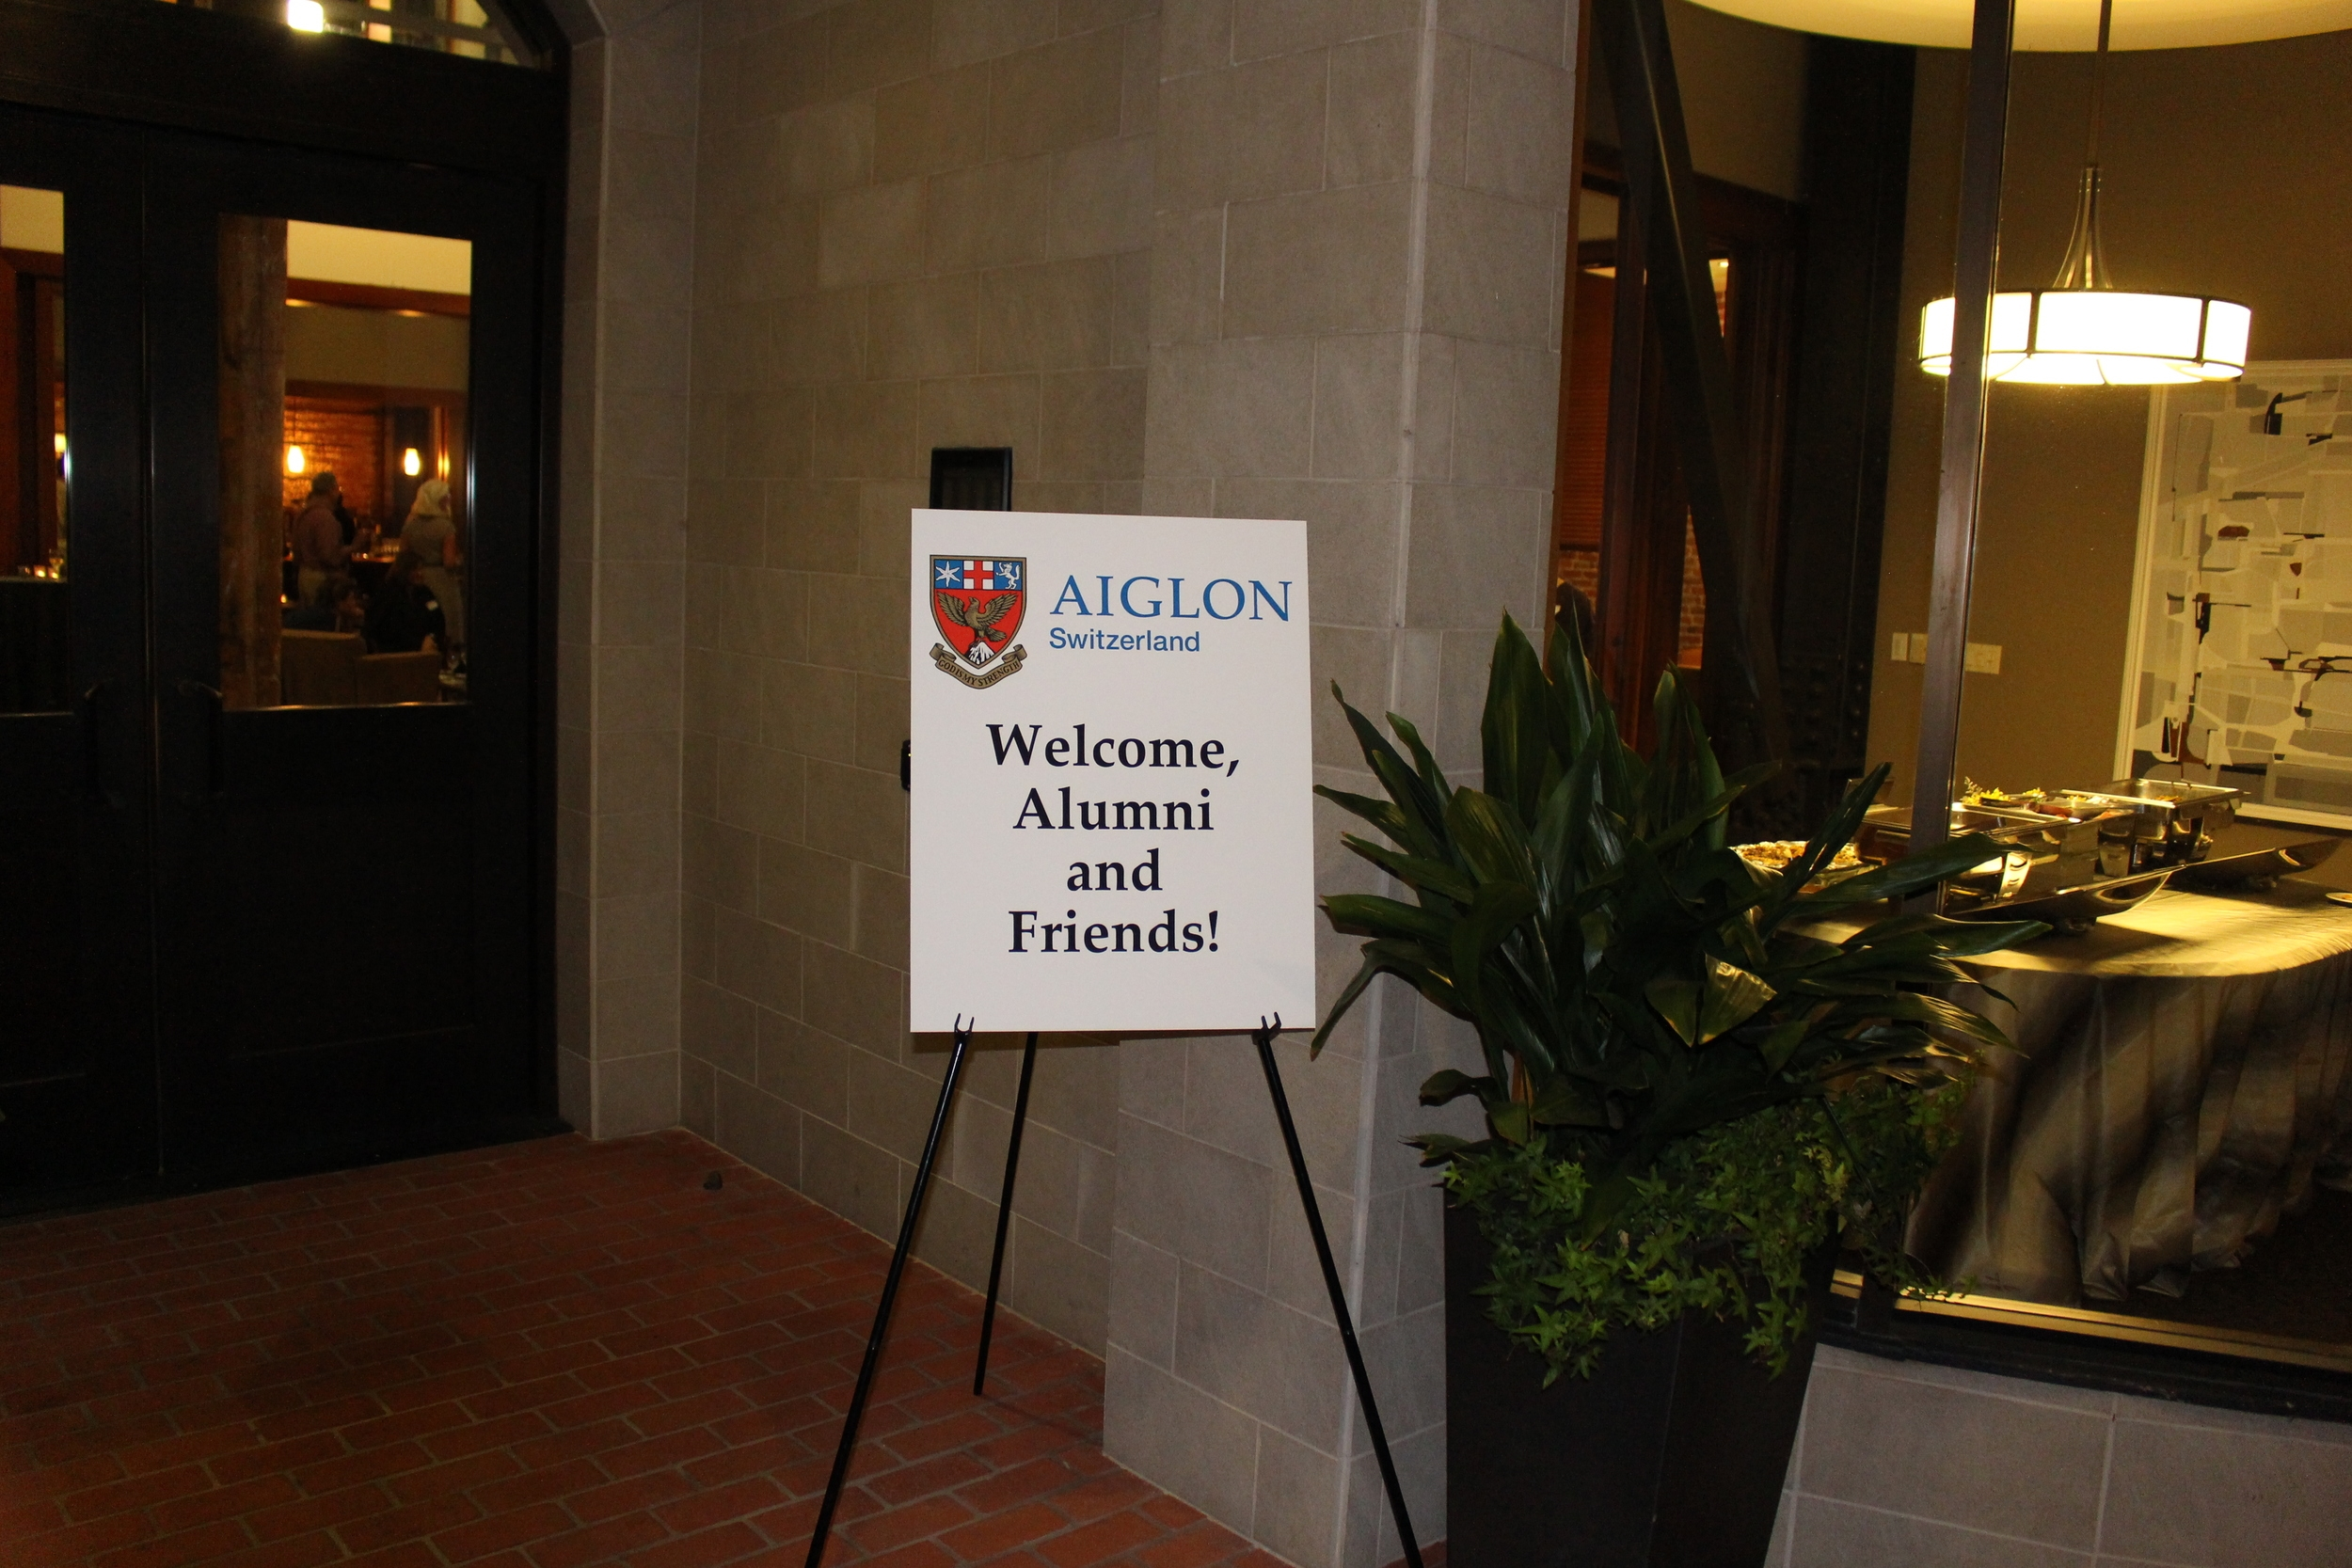 The San Francisco Reunion, hosted by alumnus Ben Suter, Aiglon College, and the FOAC (U.S.)